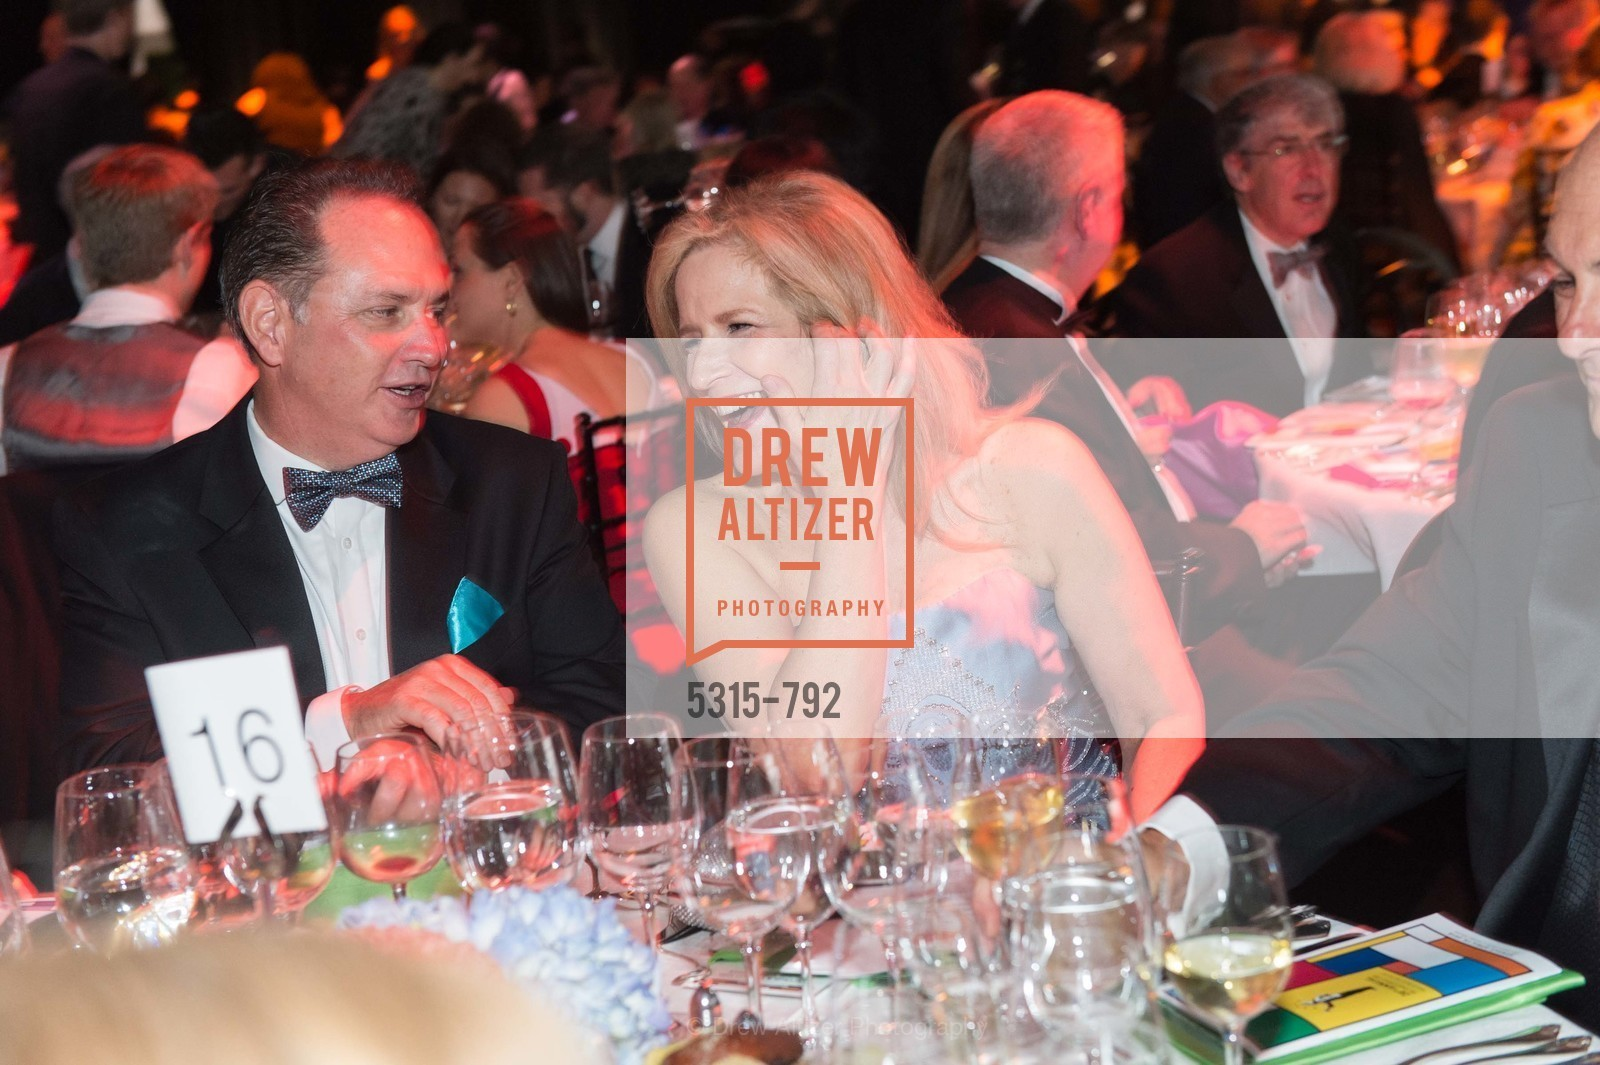 Helen Burt, MEALS ON WHEELS OF SAN FRANCISCO'S 28th Annual Star Chefs and Vintners Gala, US, April 19th, 2015,Drew Altizer, Drew Altizer Photography, full-service agency, private events, San Francisco photographer, photographer california